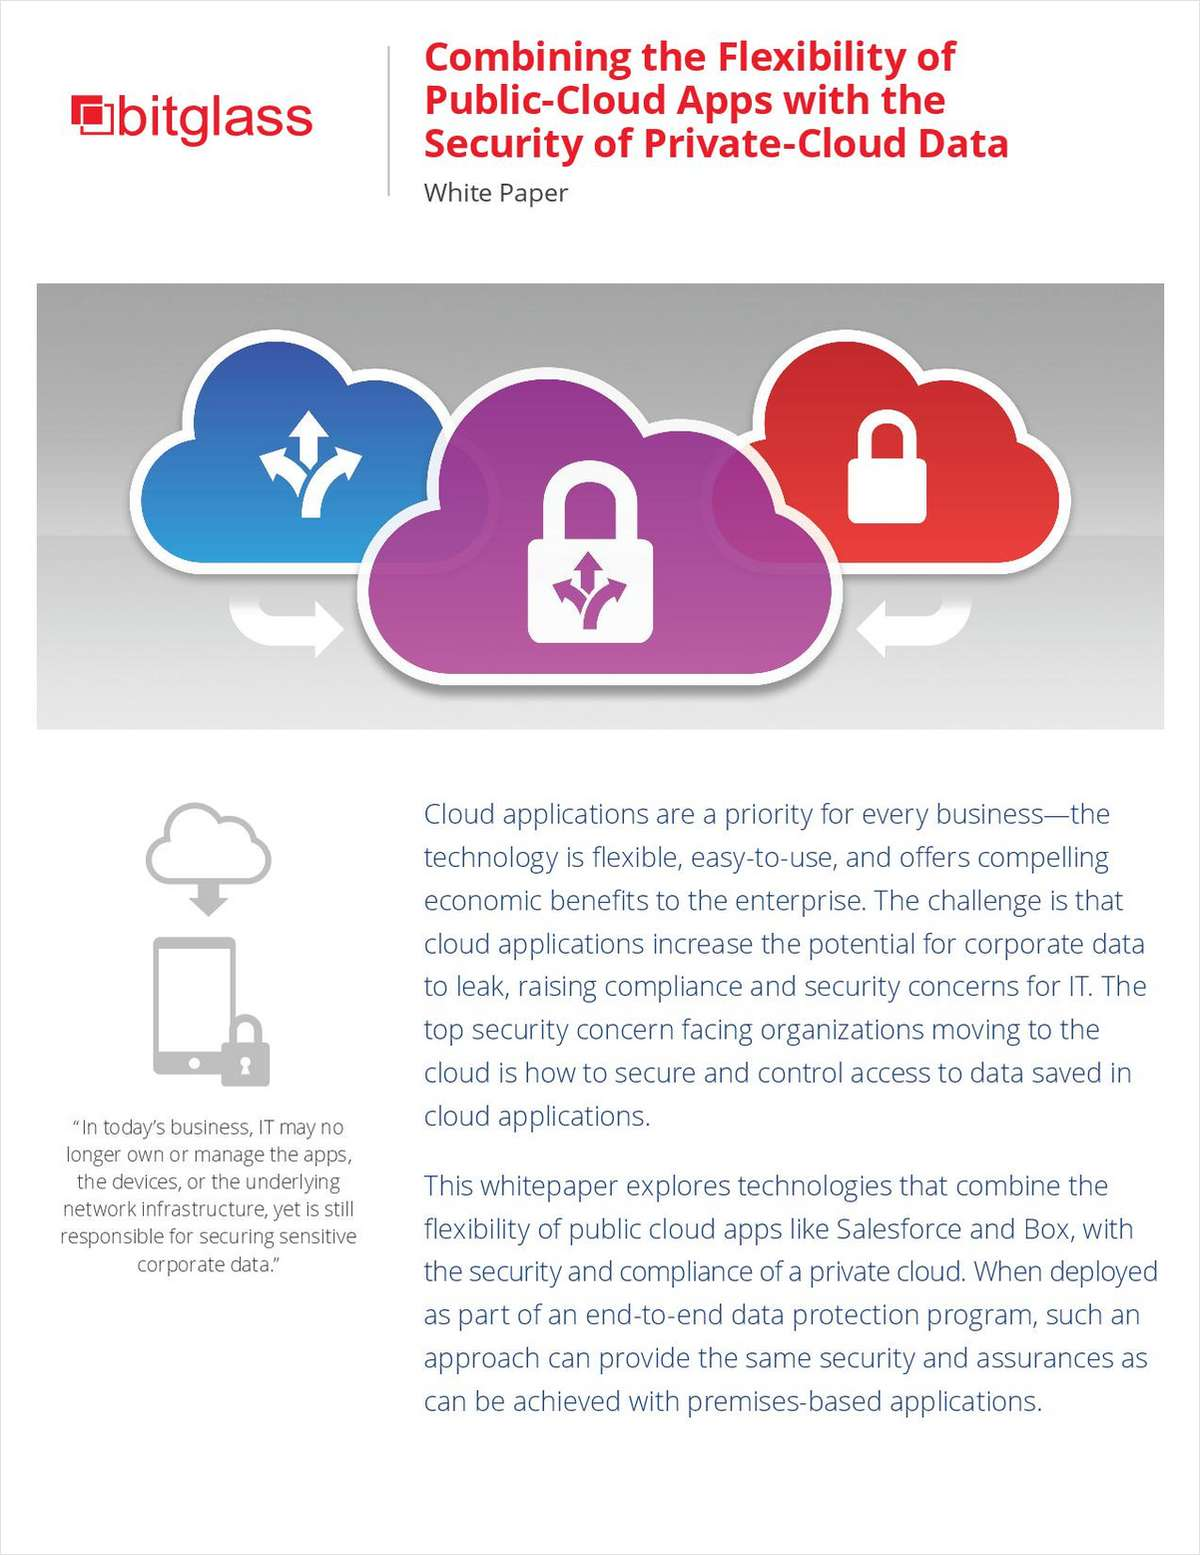 Combining the Flexibility of Public-Cloud Apps with the Security of Private-Cloud Data for the Finance Industry